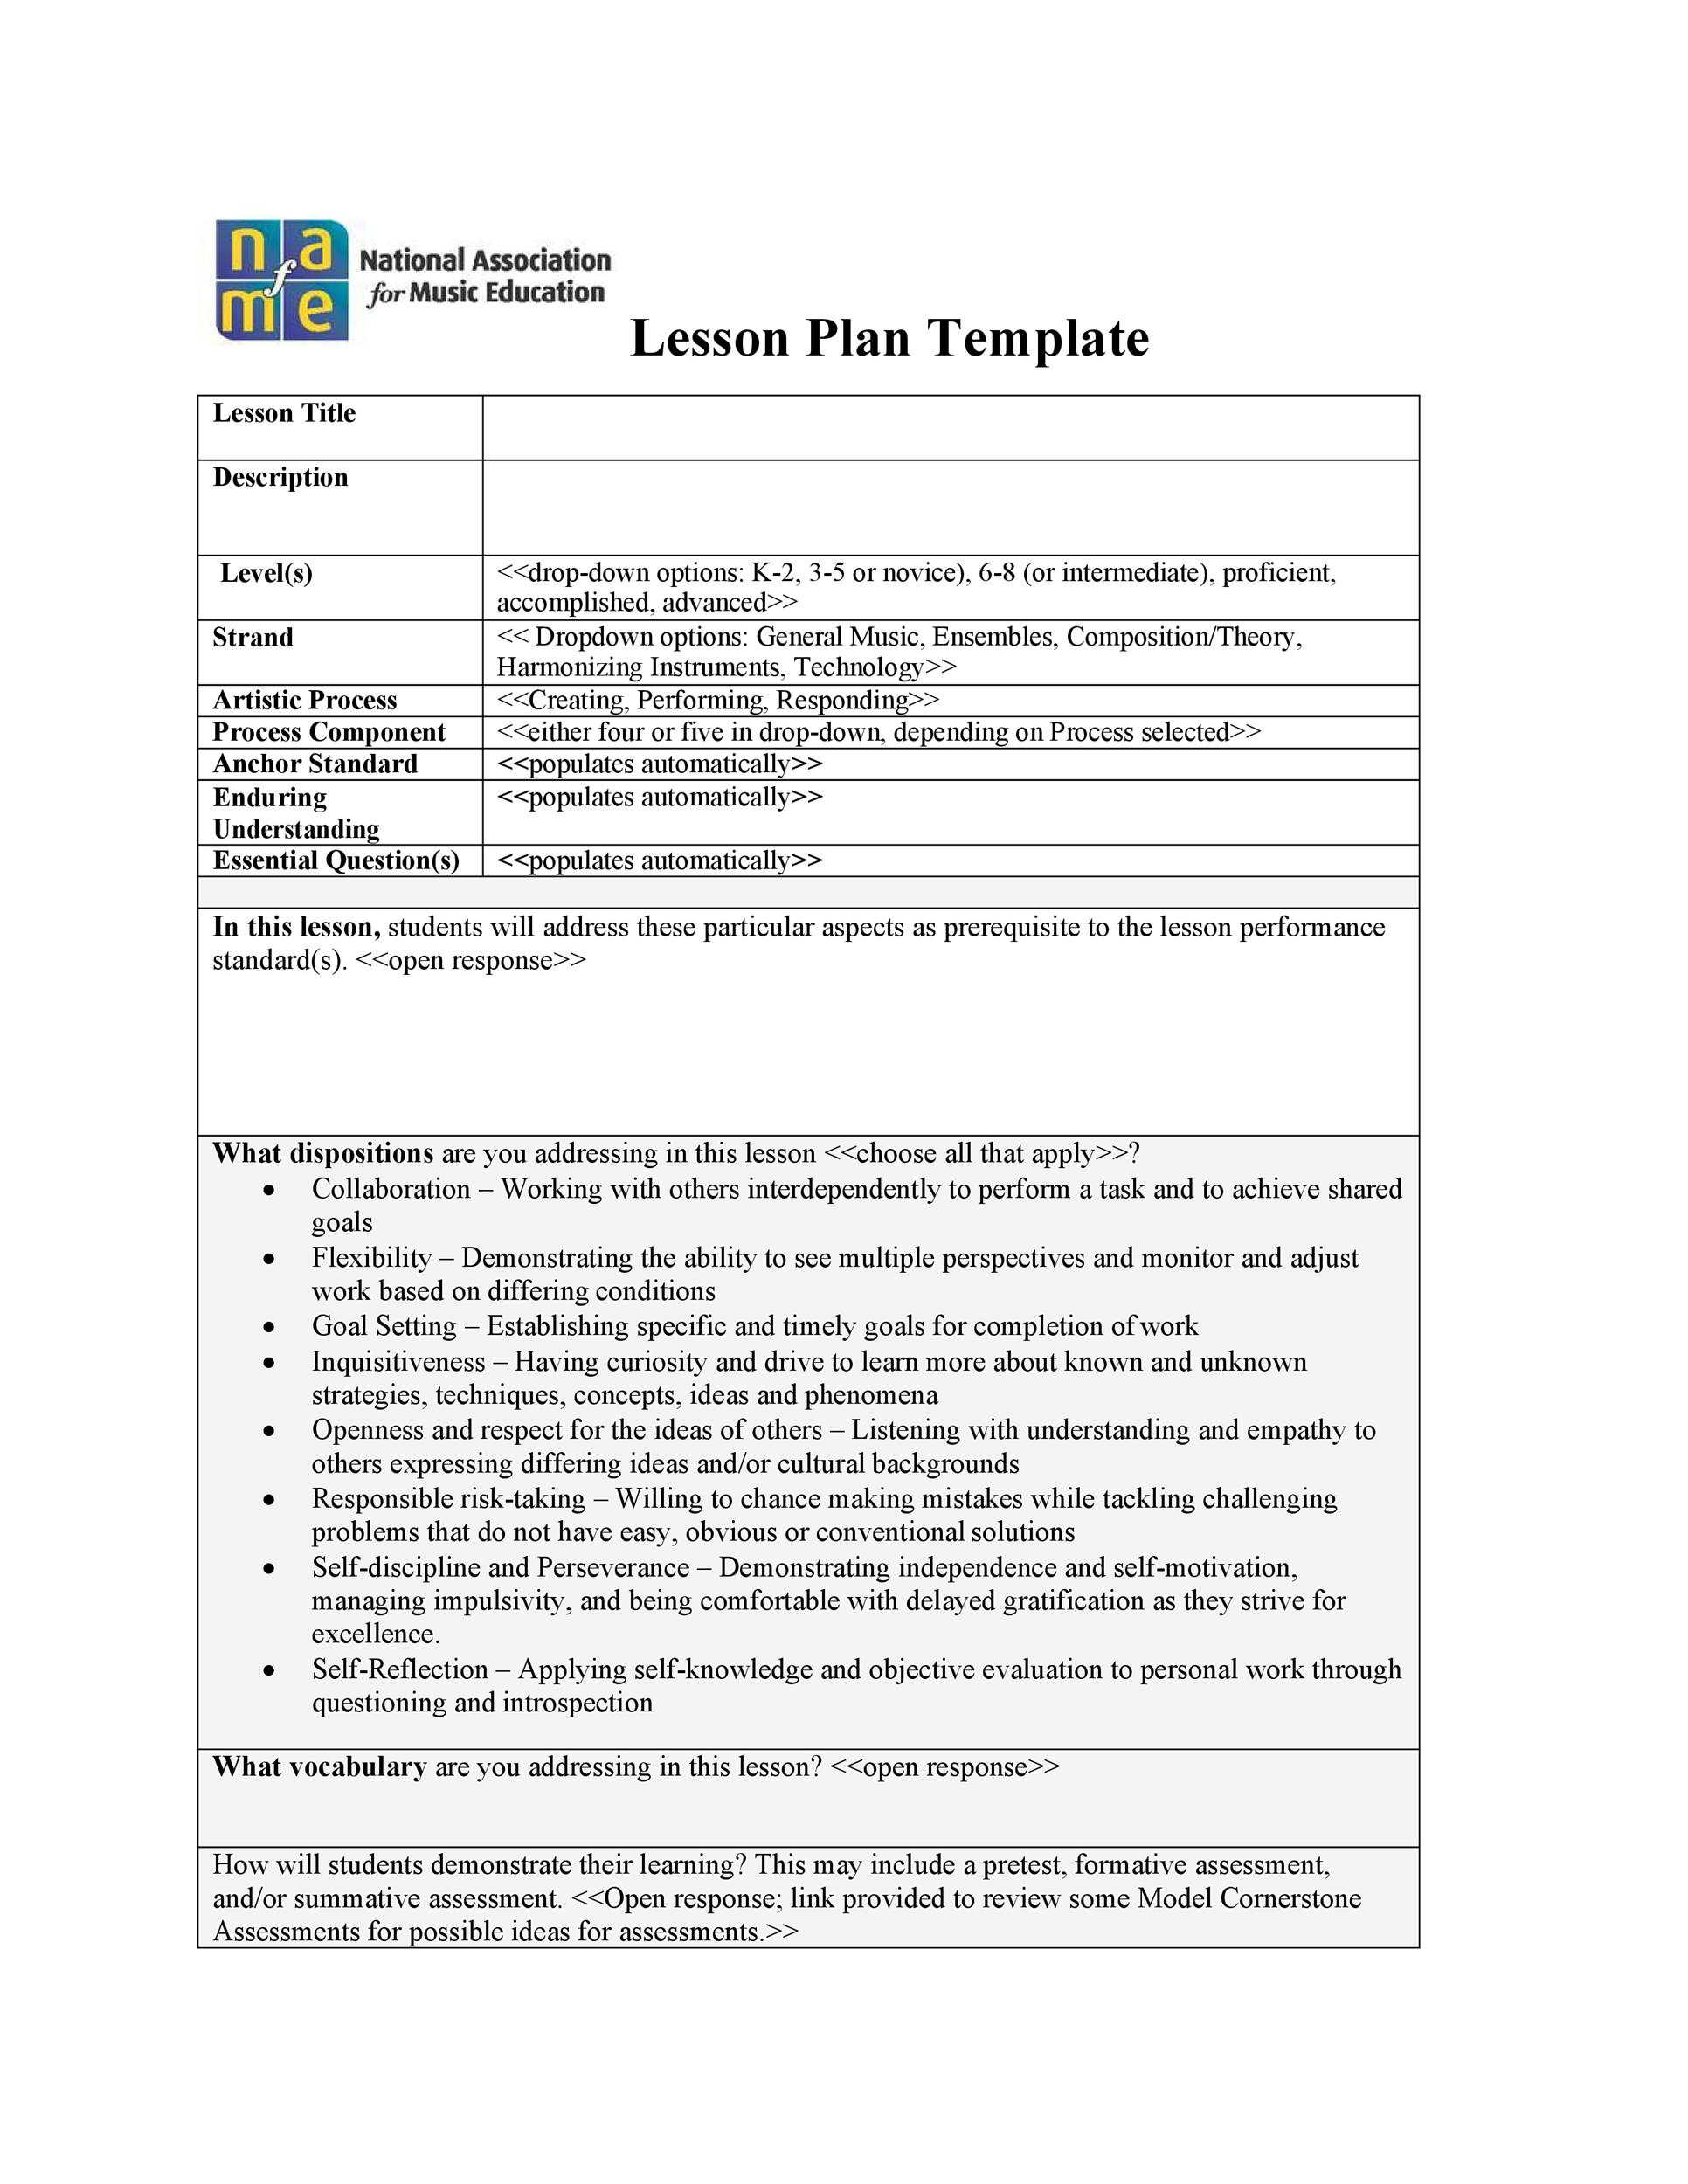 Unlv elementary lesson plan template teacher lesson plan template.